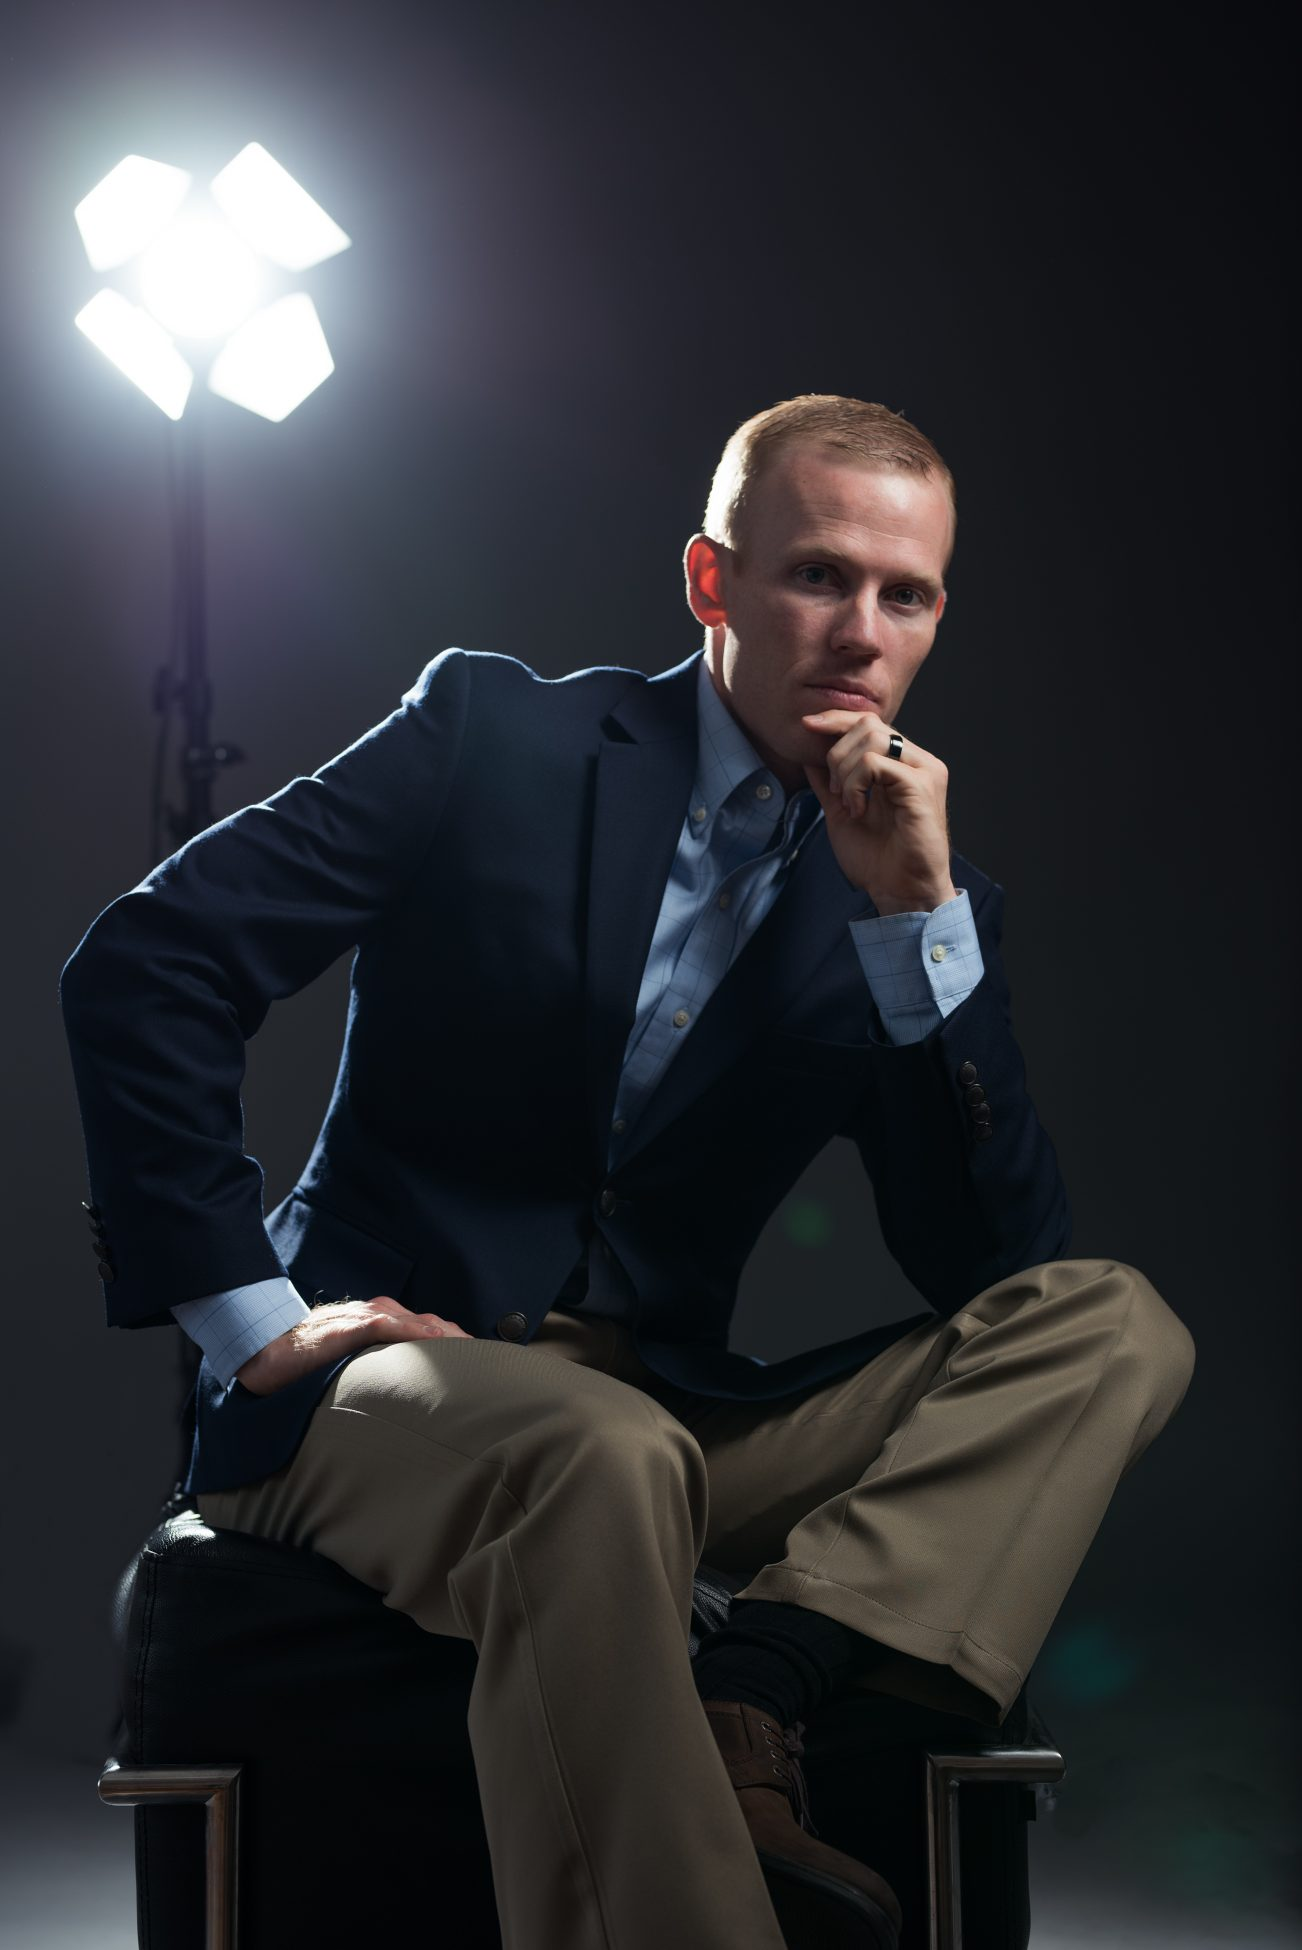 Business portrait with dramatic lighting by Utah photographer Purple Moss